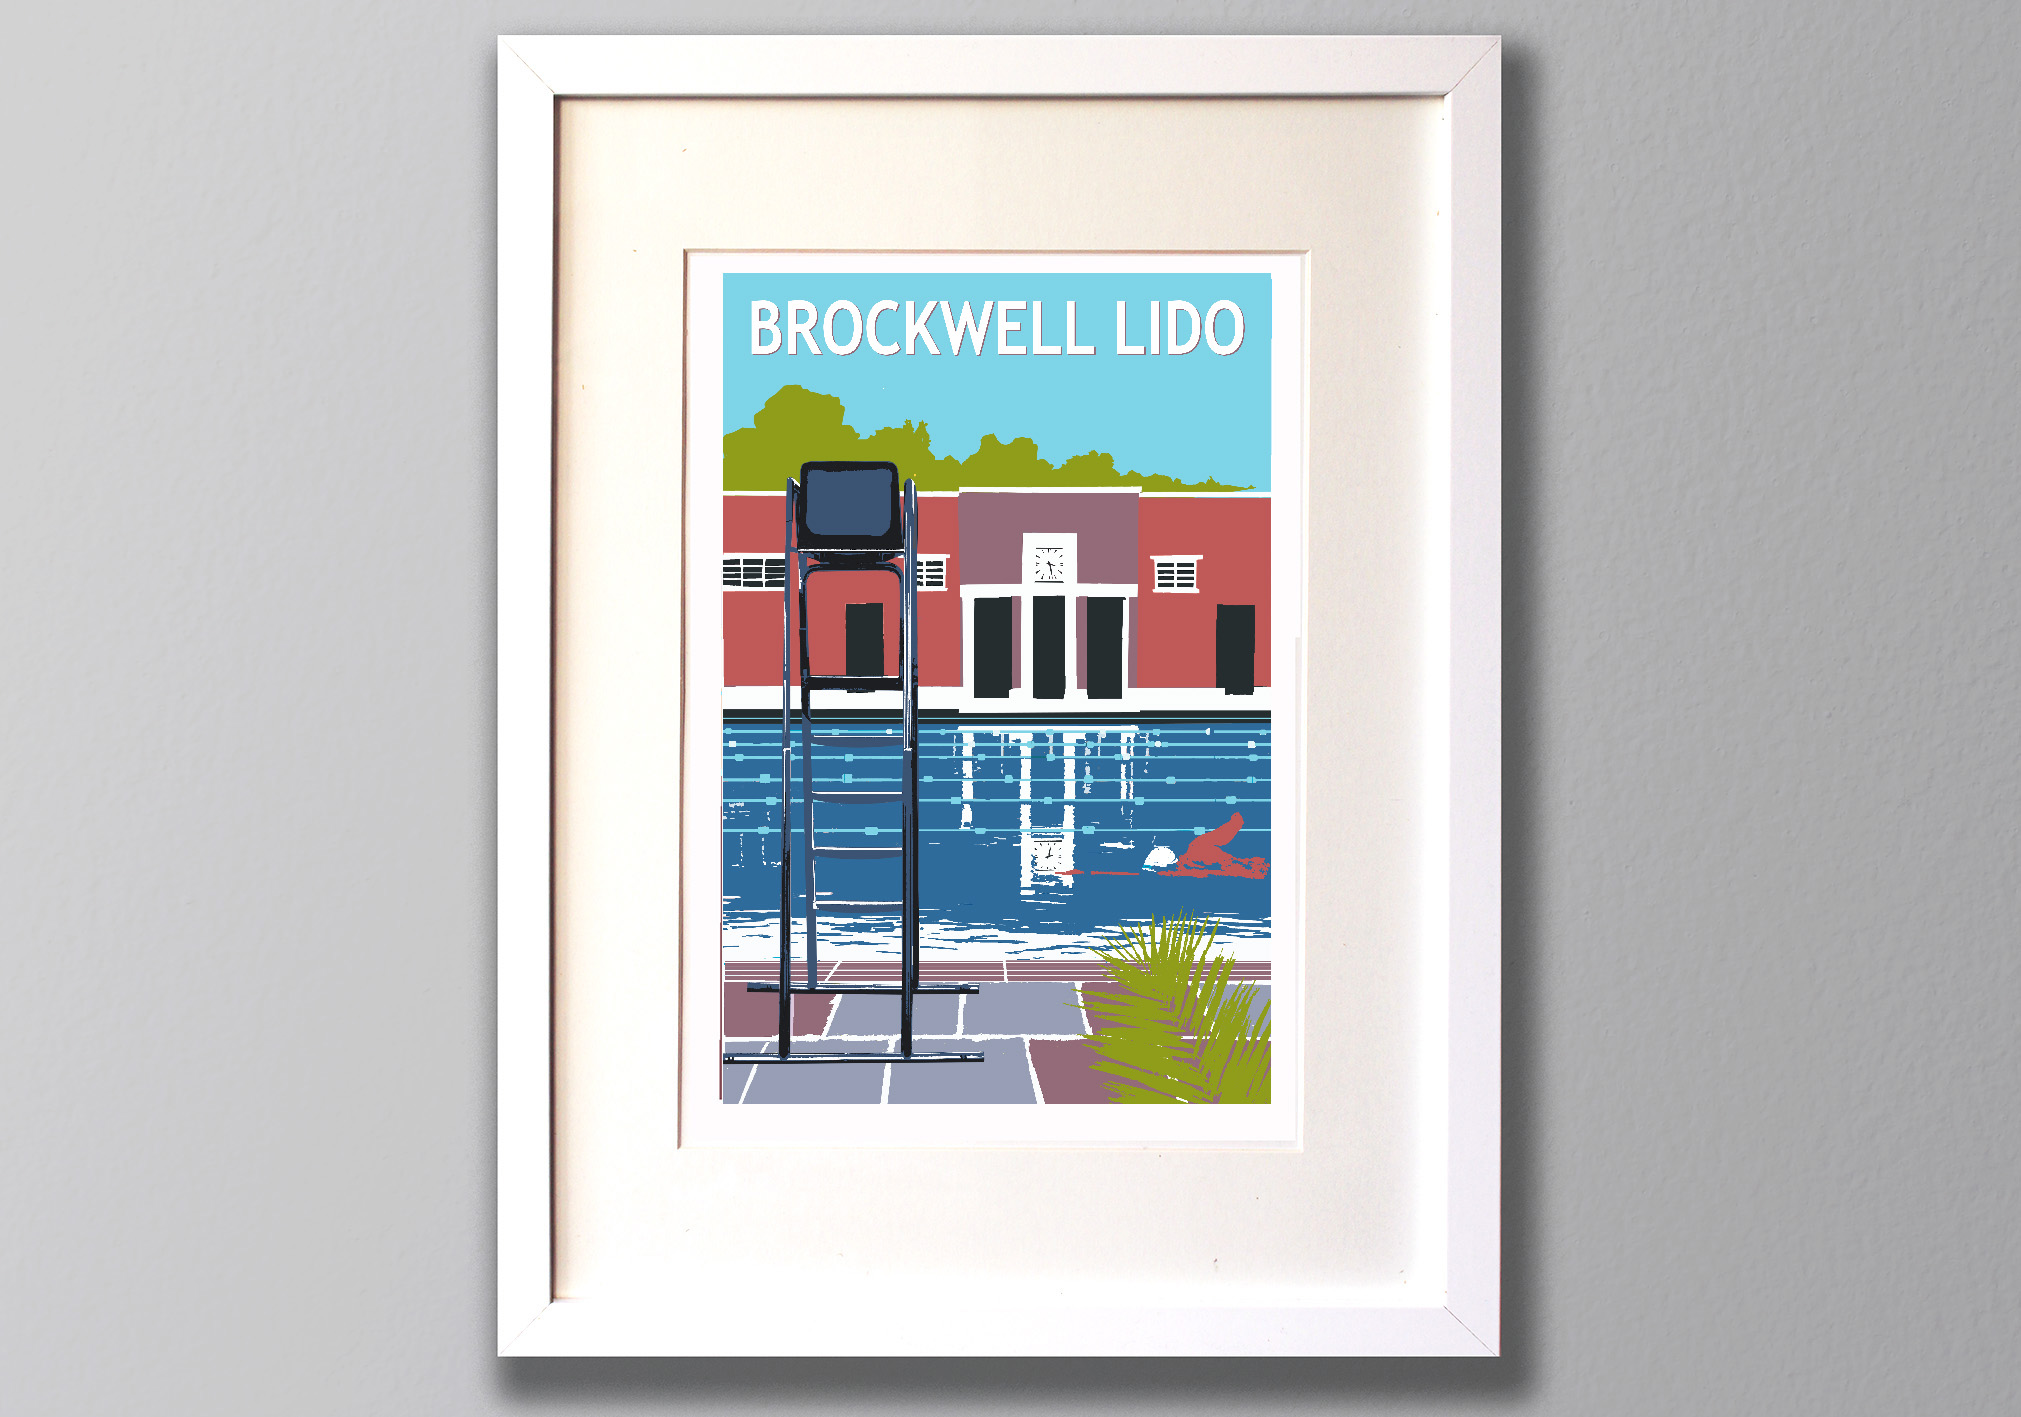 BrockwellLido_whiteframe_LR copy.jpg